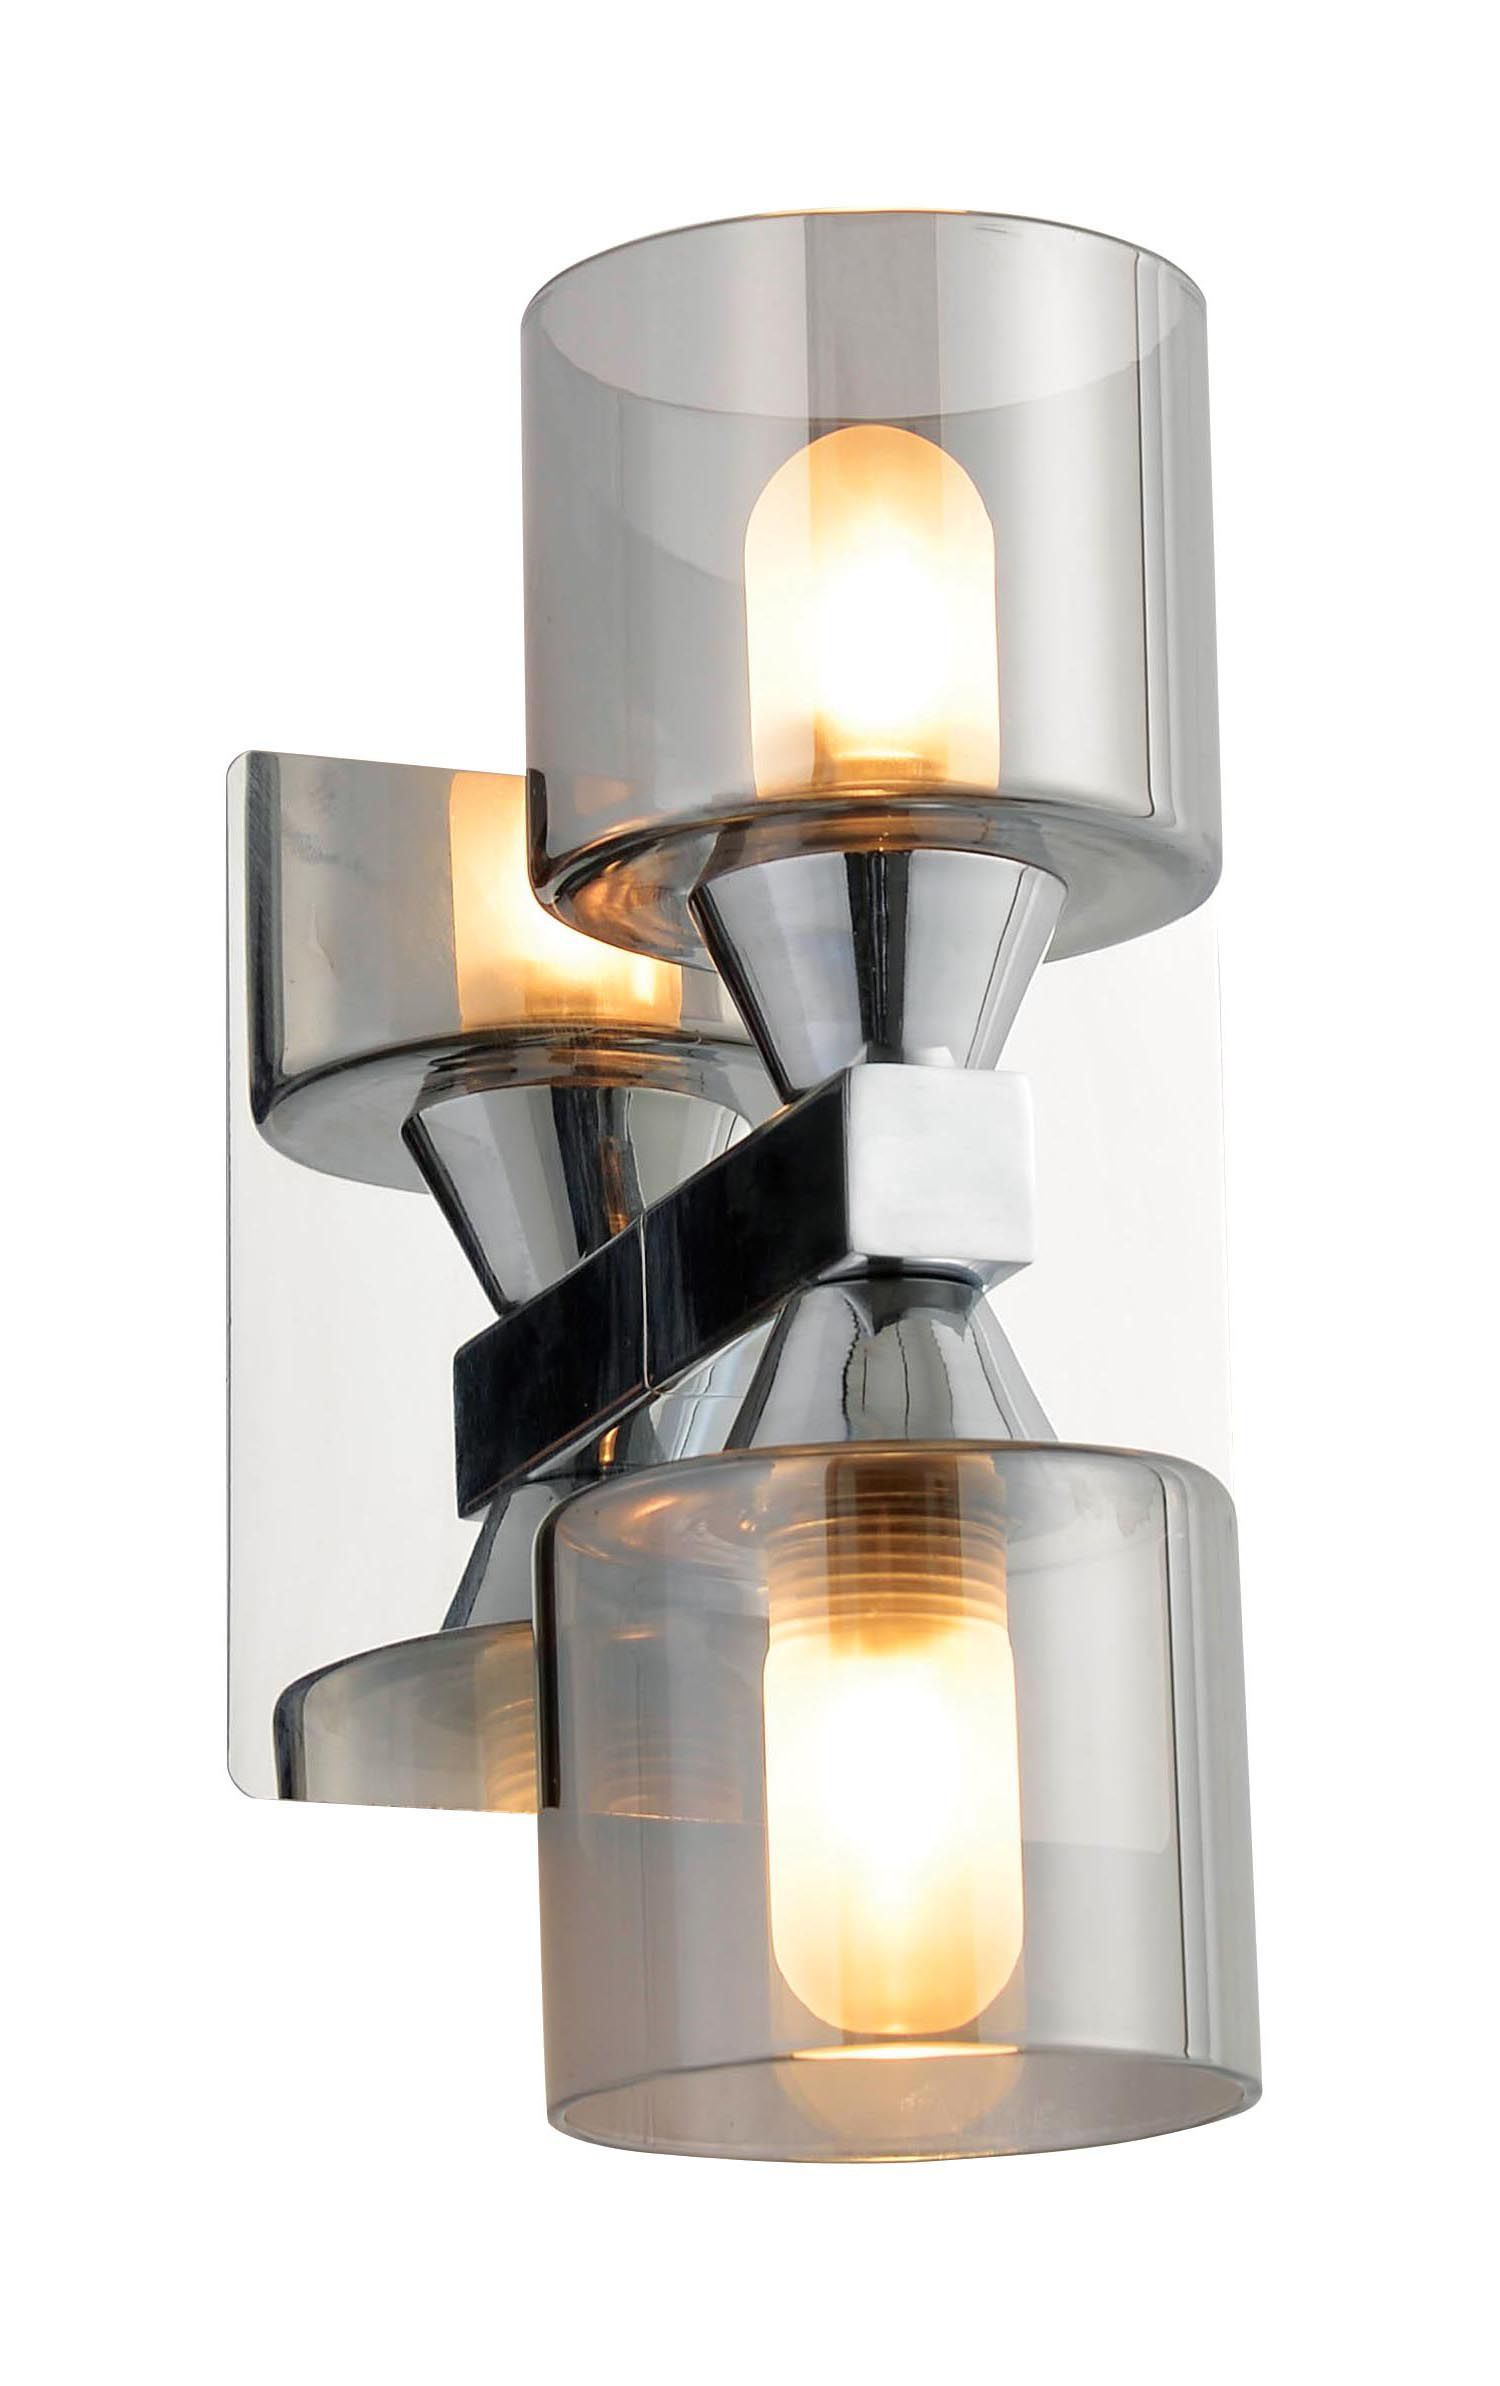 Cobark clear smoked effect double bathroom wall light departments